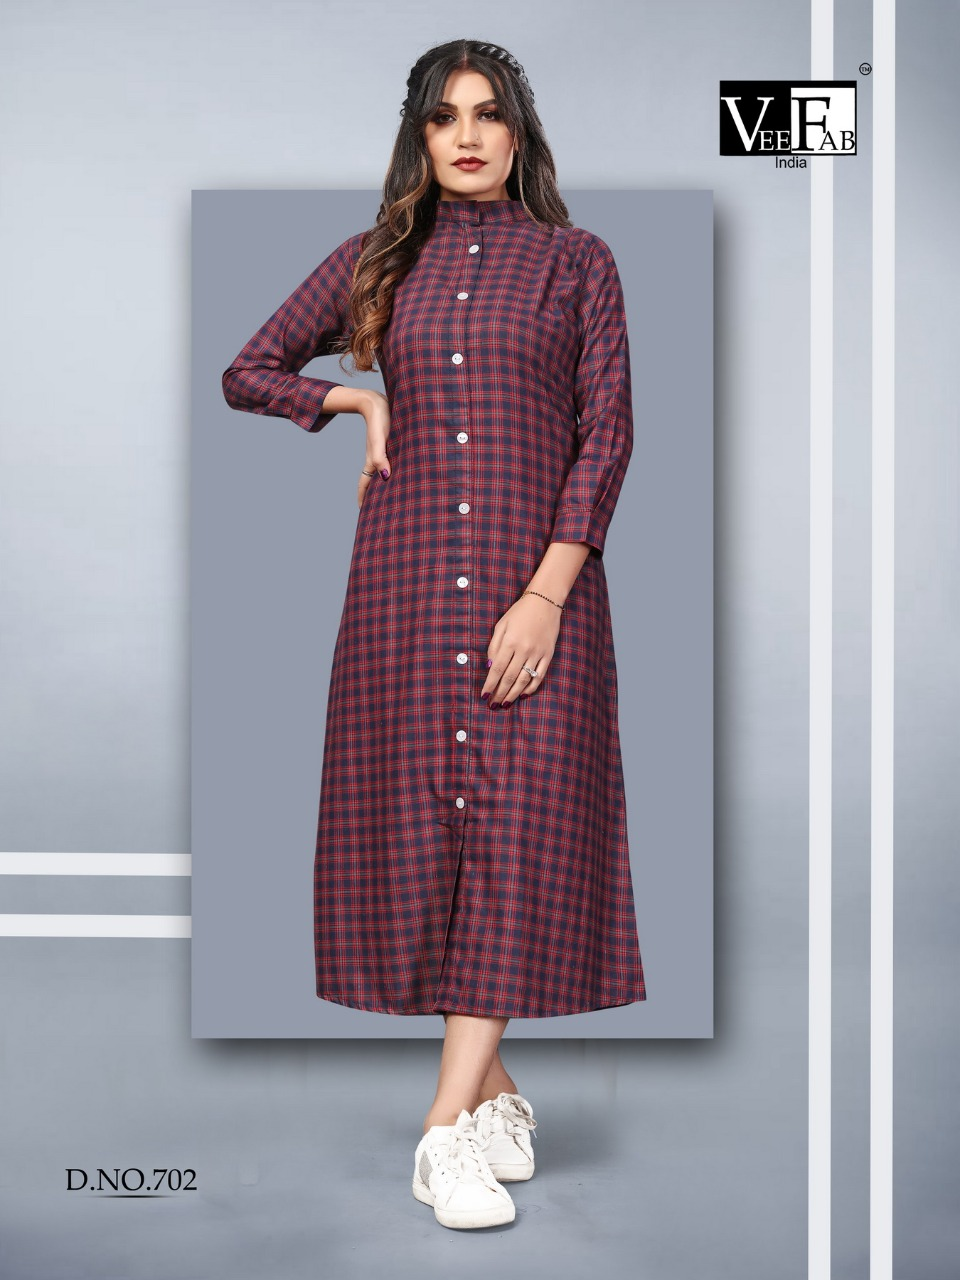 Vee Fab Winter Grace Vol 7 Kurti Wholesale Catalog 6 Pcs 5 - Vee Fab Winter Grace Vol 7 Kurti Wholesale Catalog 6 Pcs